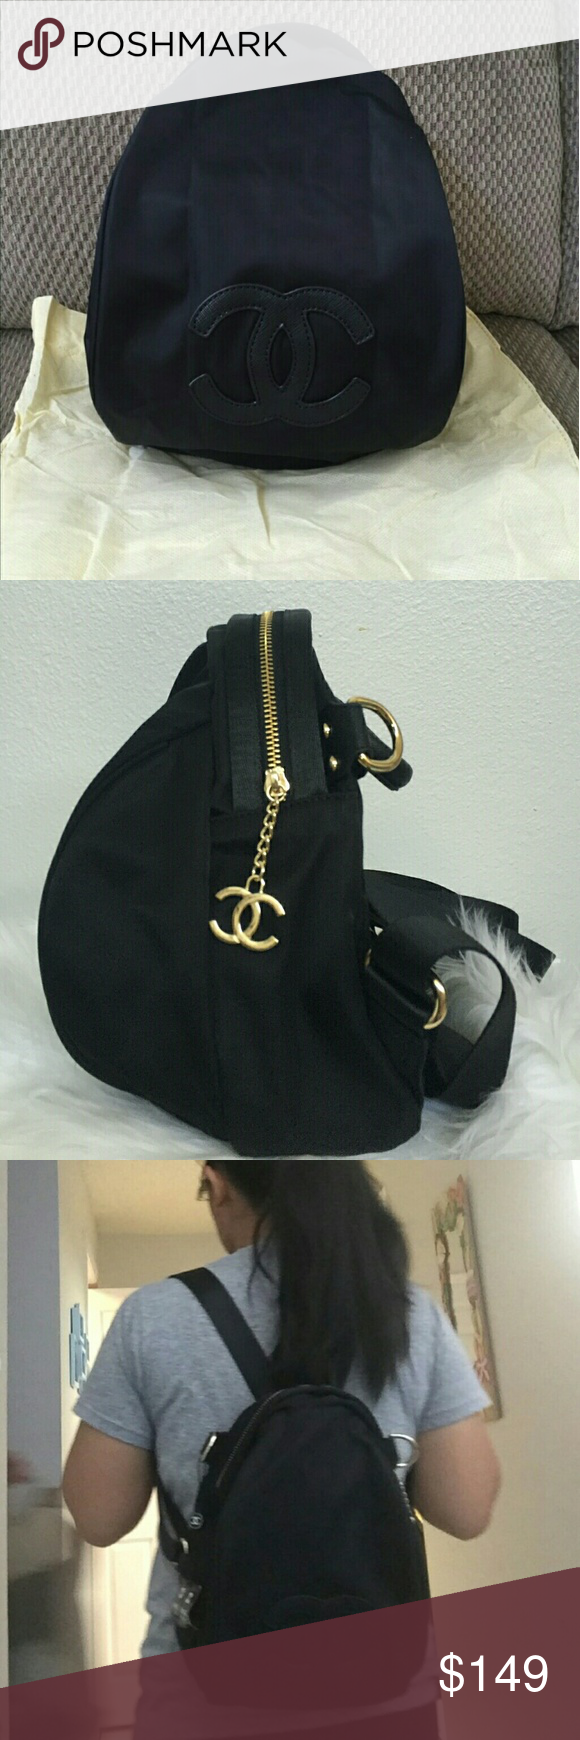 f521e57cac0d ... Authentic VIP gift backpack cross body bag Brand new 2017 Authentic  Chanel VIP gift backpack cross ...